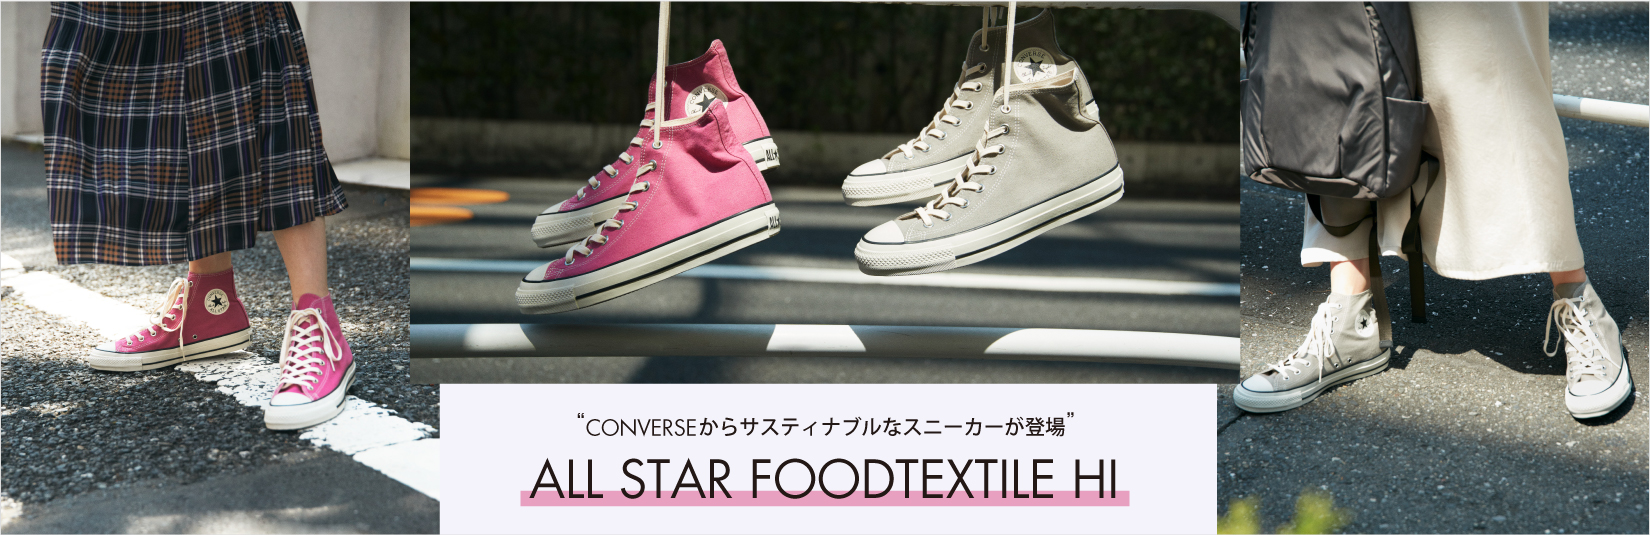 ALL STAR FOODTEXTILE HI